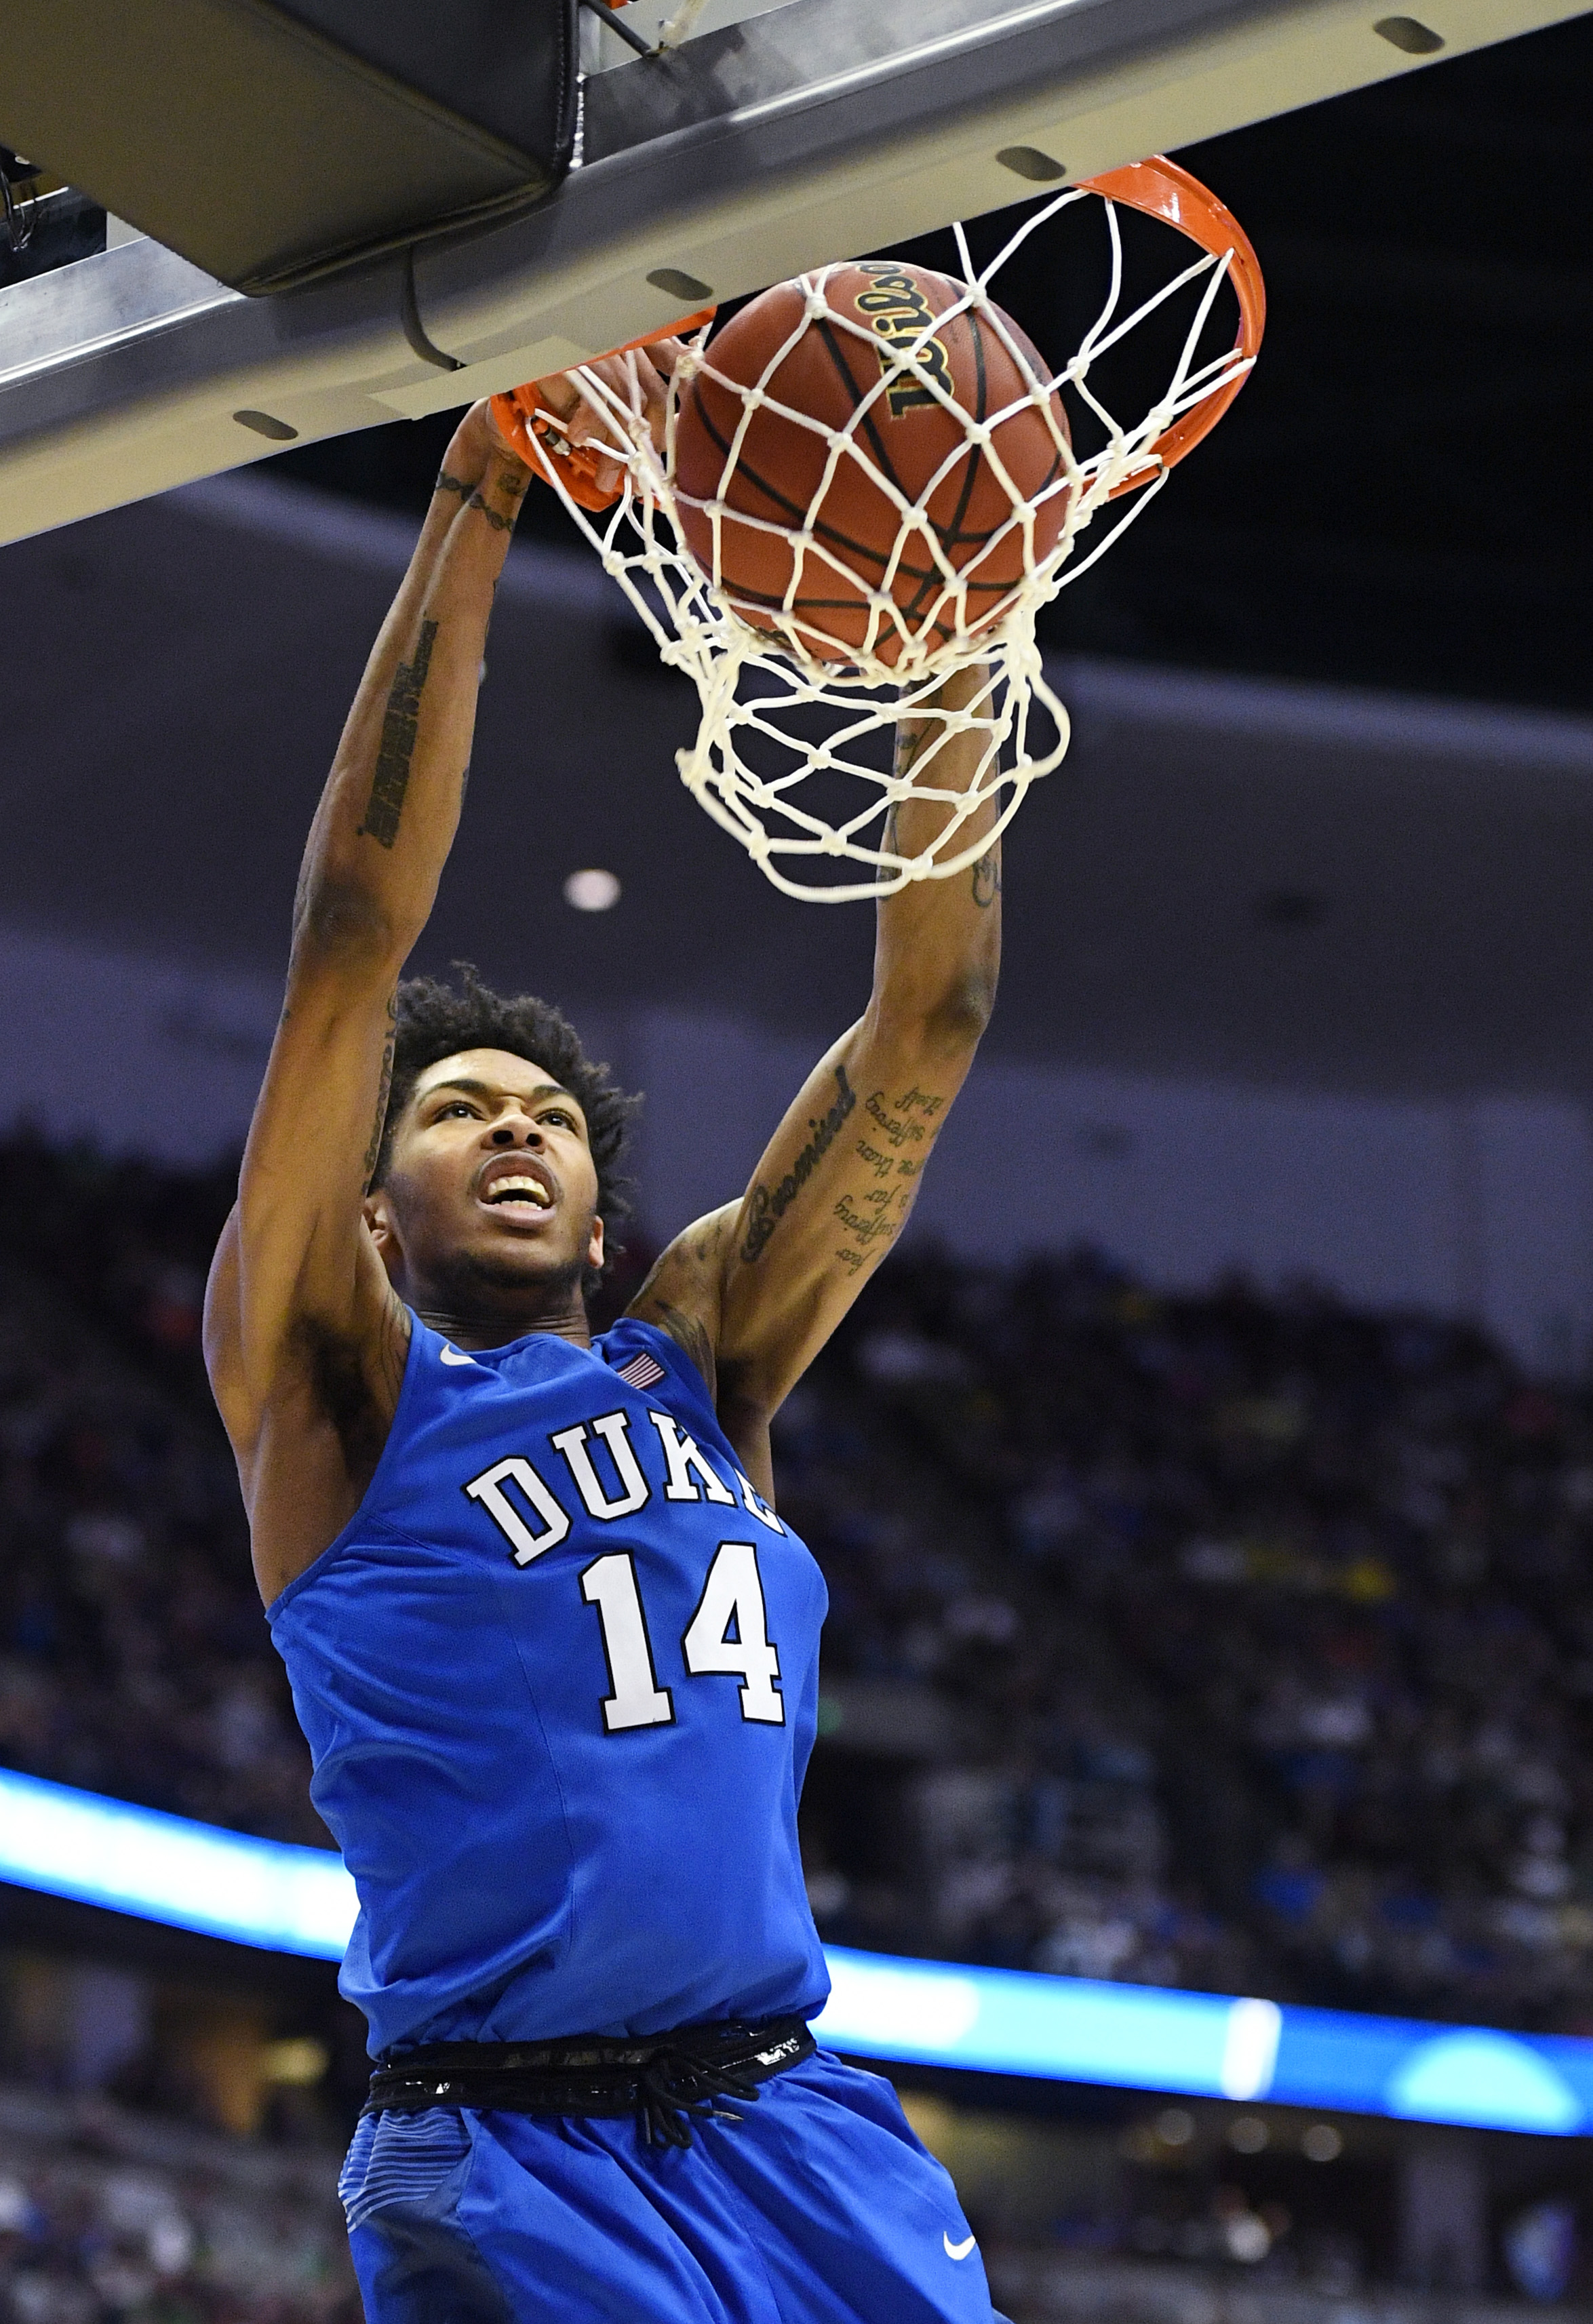 FILE - In this Thursday, March 24, 2016 file photo, Duke guard Brandon Ingram dunks against Oregon during the second half of an NCAA college basketball game in the regional semifinals of the NCAA Tournament in Anaheim, Calif. (AP Photo/Mark J. Terrill, Fi